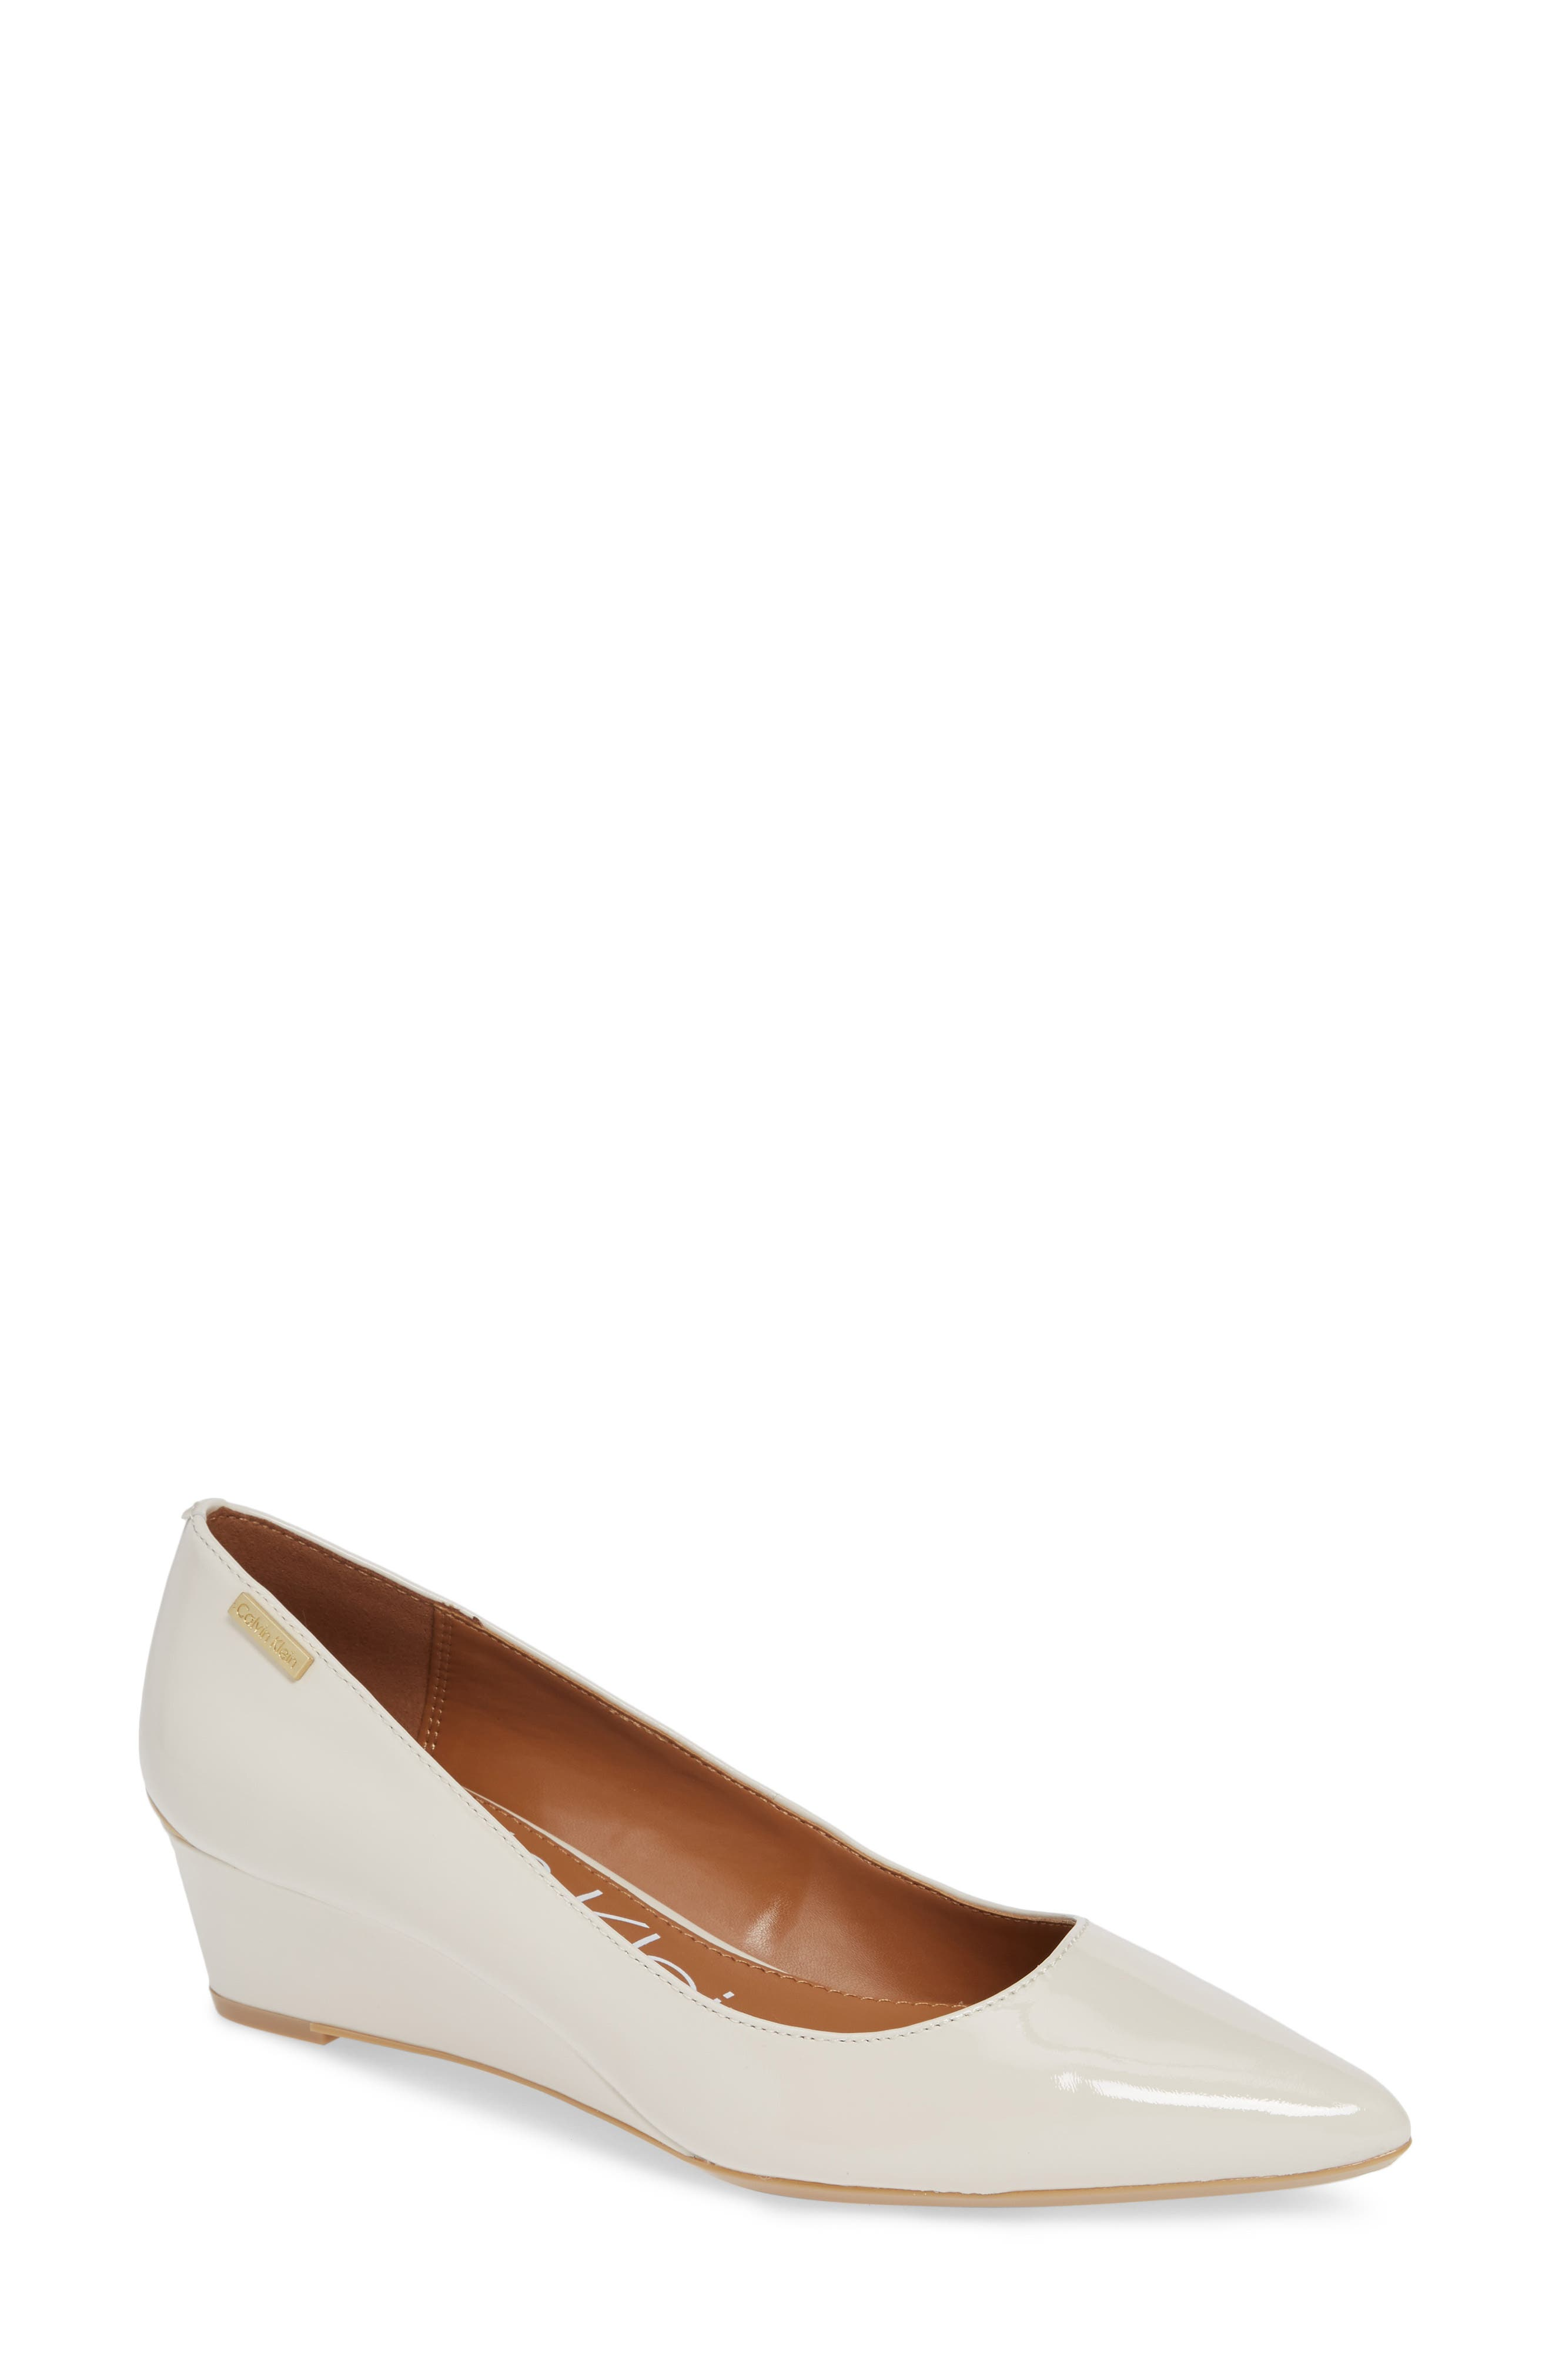 'Germina' Pointy Toe Wedge,                             Main thumbnail 1, color,                             SOFT WHITE PATENT